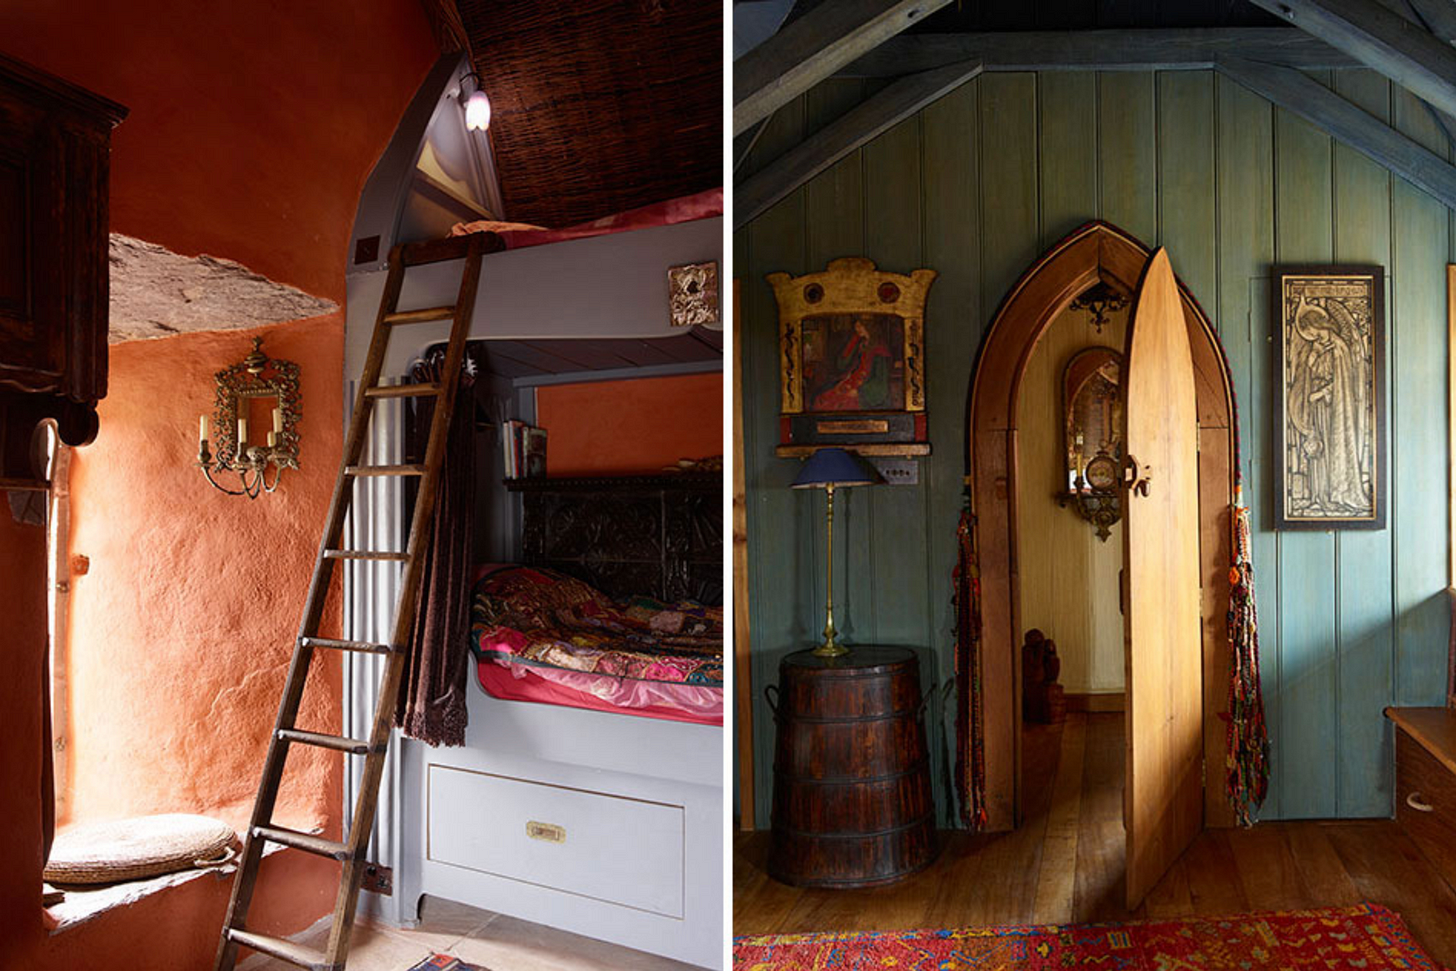 Two detail pictures from Jeremy Irons castle, a bunkbed and a Gothic-arched doorway